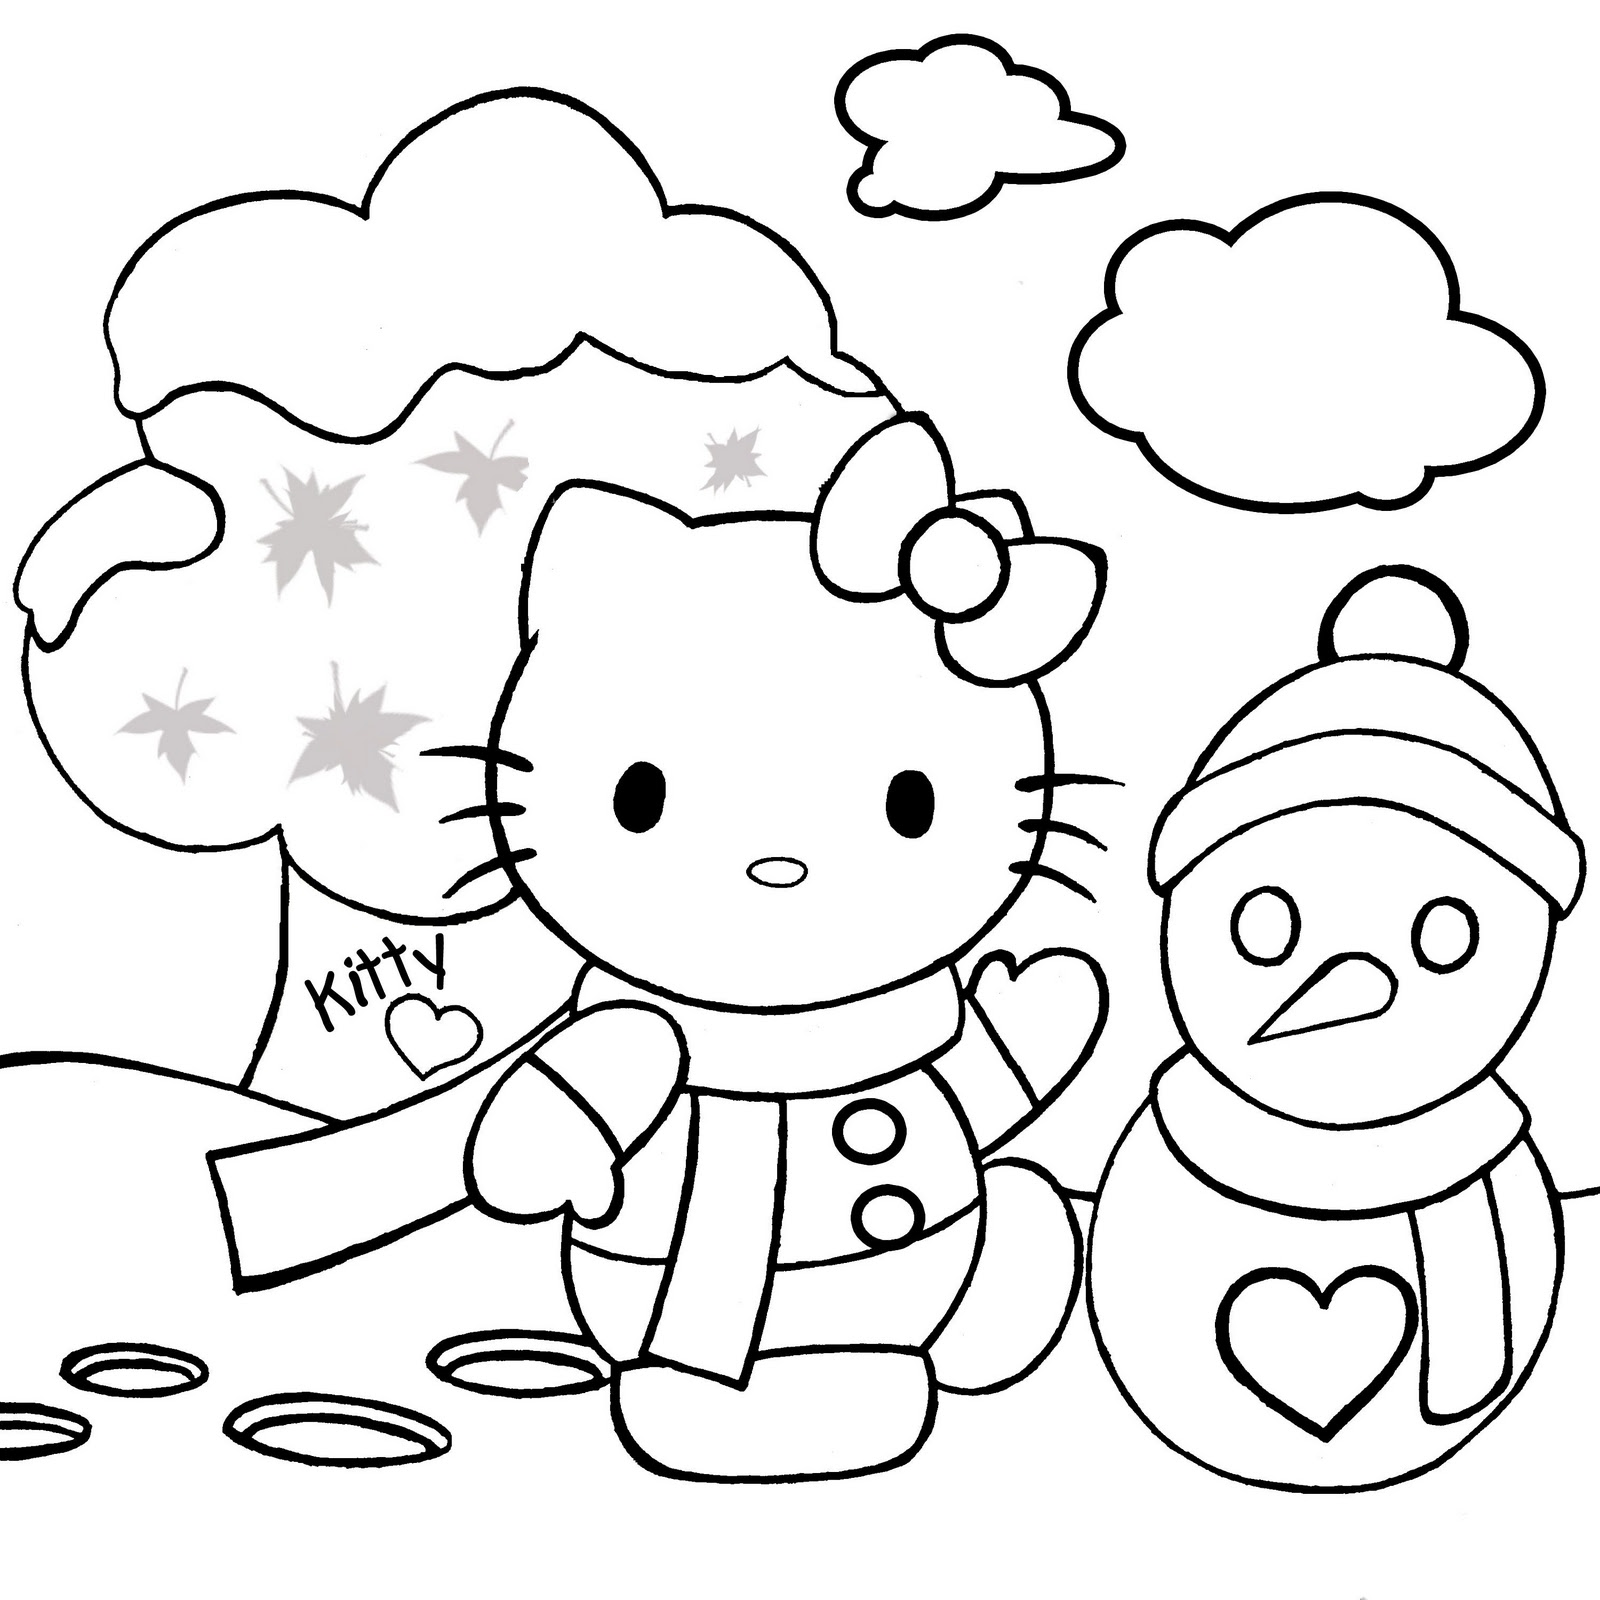 hello kitty christmas coloring pictures happy christmas hello kitty s christmas tree 0e4e coloring pictures christmas hello kitty coloring